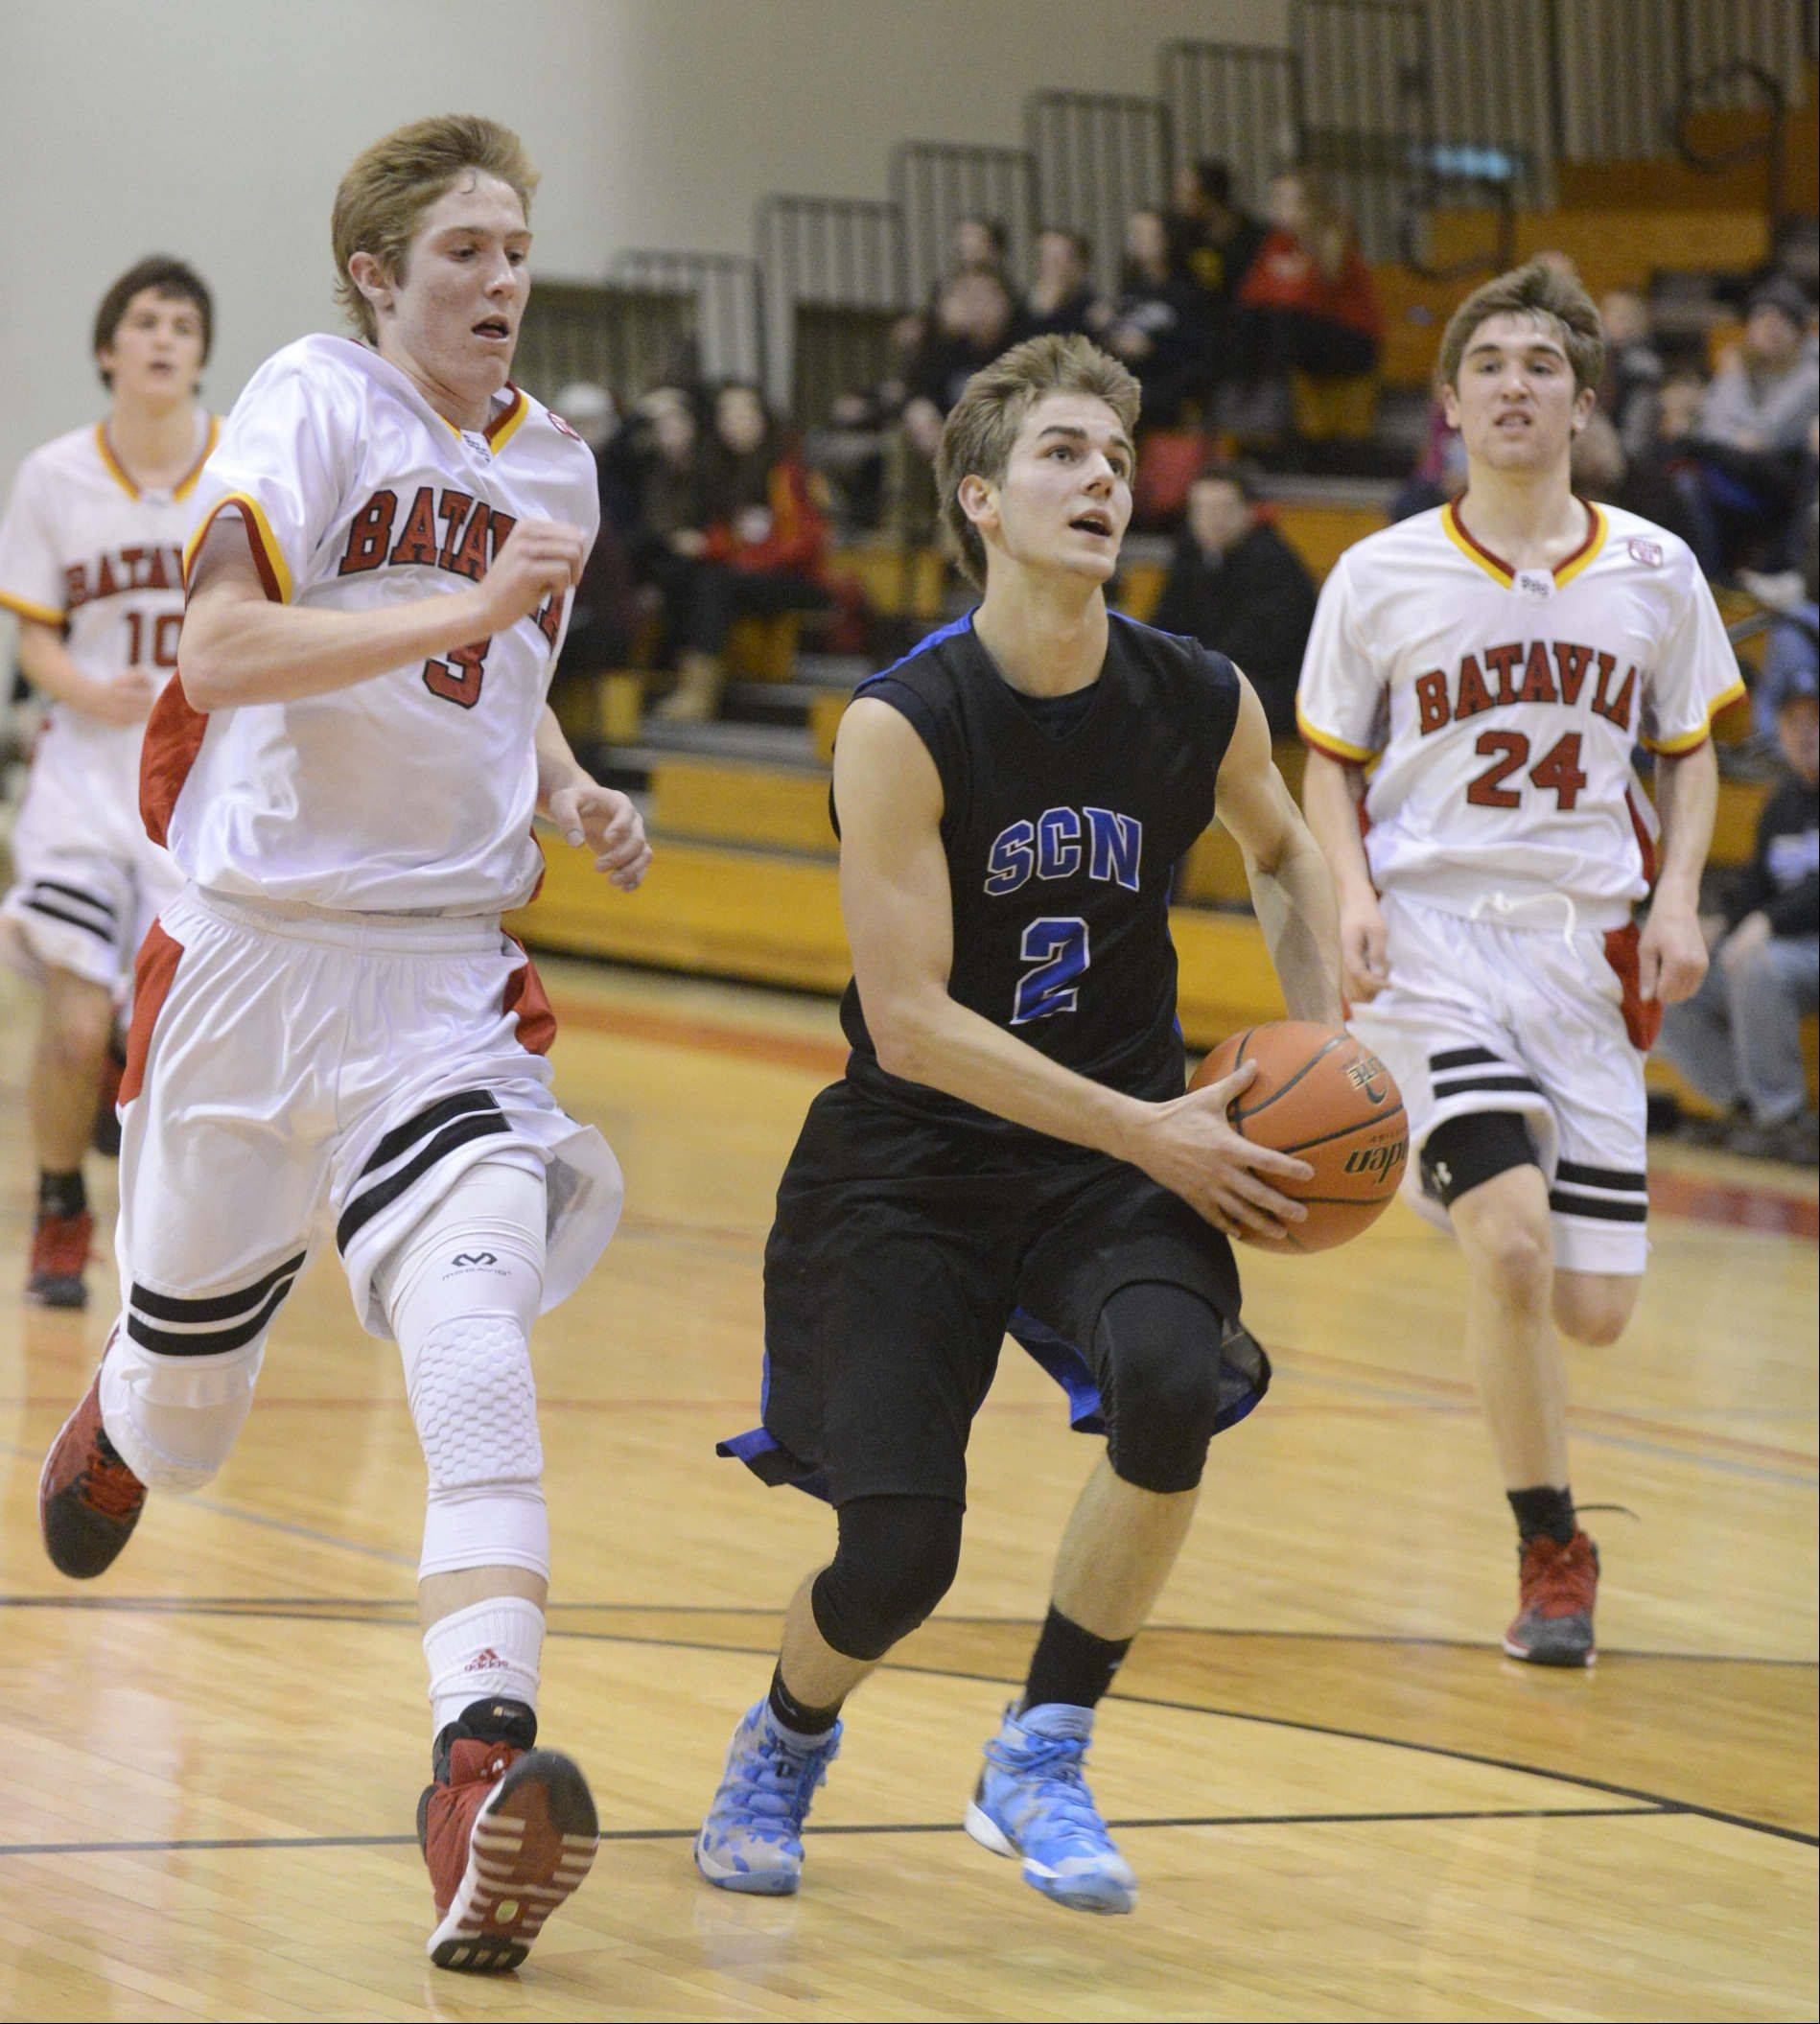 Images: St. Charles North at Batavia boys basketball